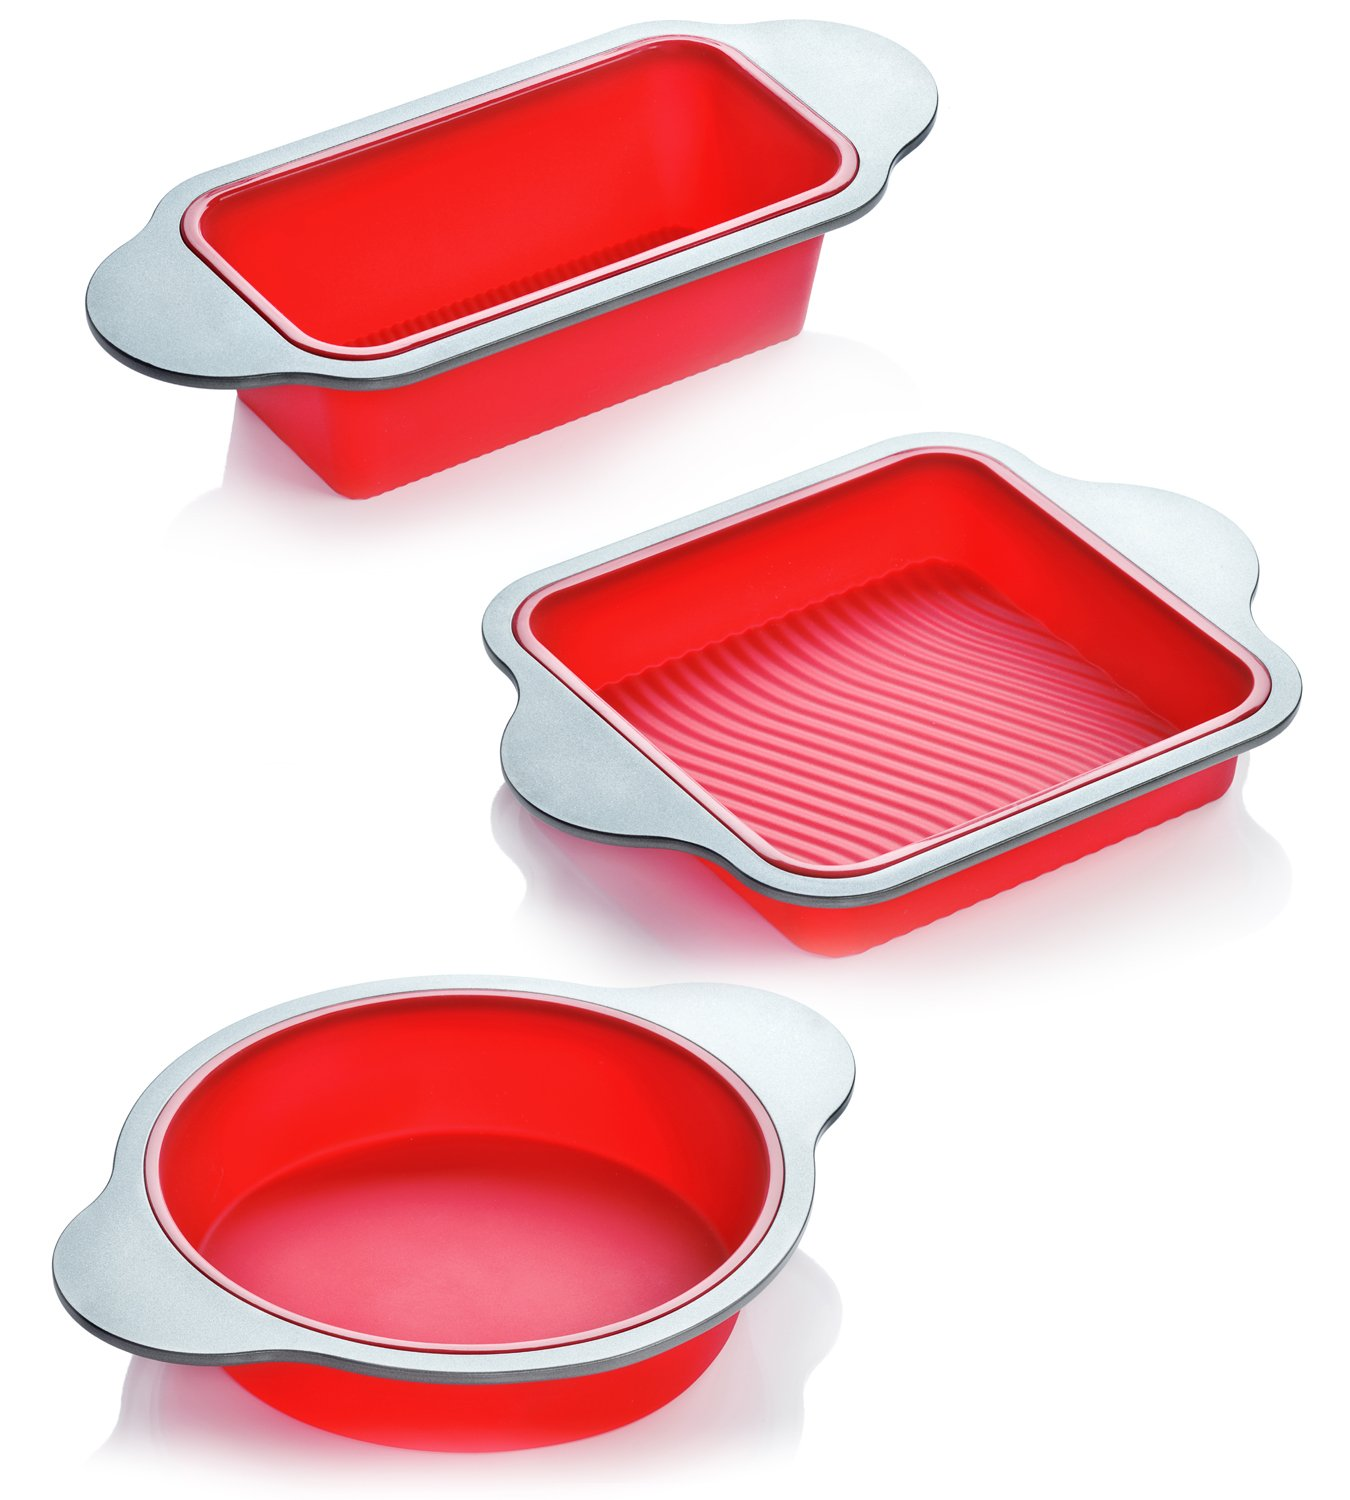 Silicone Bakeware Set | 3-Piece Professional Non-Stick Silicone Baking Set by Boxiki Kitchen | Includes Round Cake Mold Pan, Square Cake Mold Pan, Bread Loaf Mold Pan | FDA Silicone